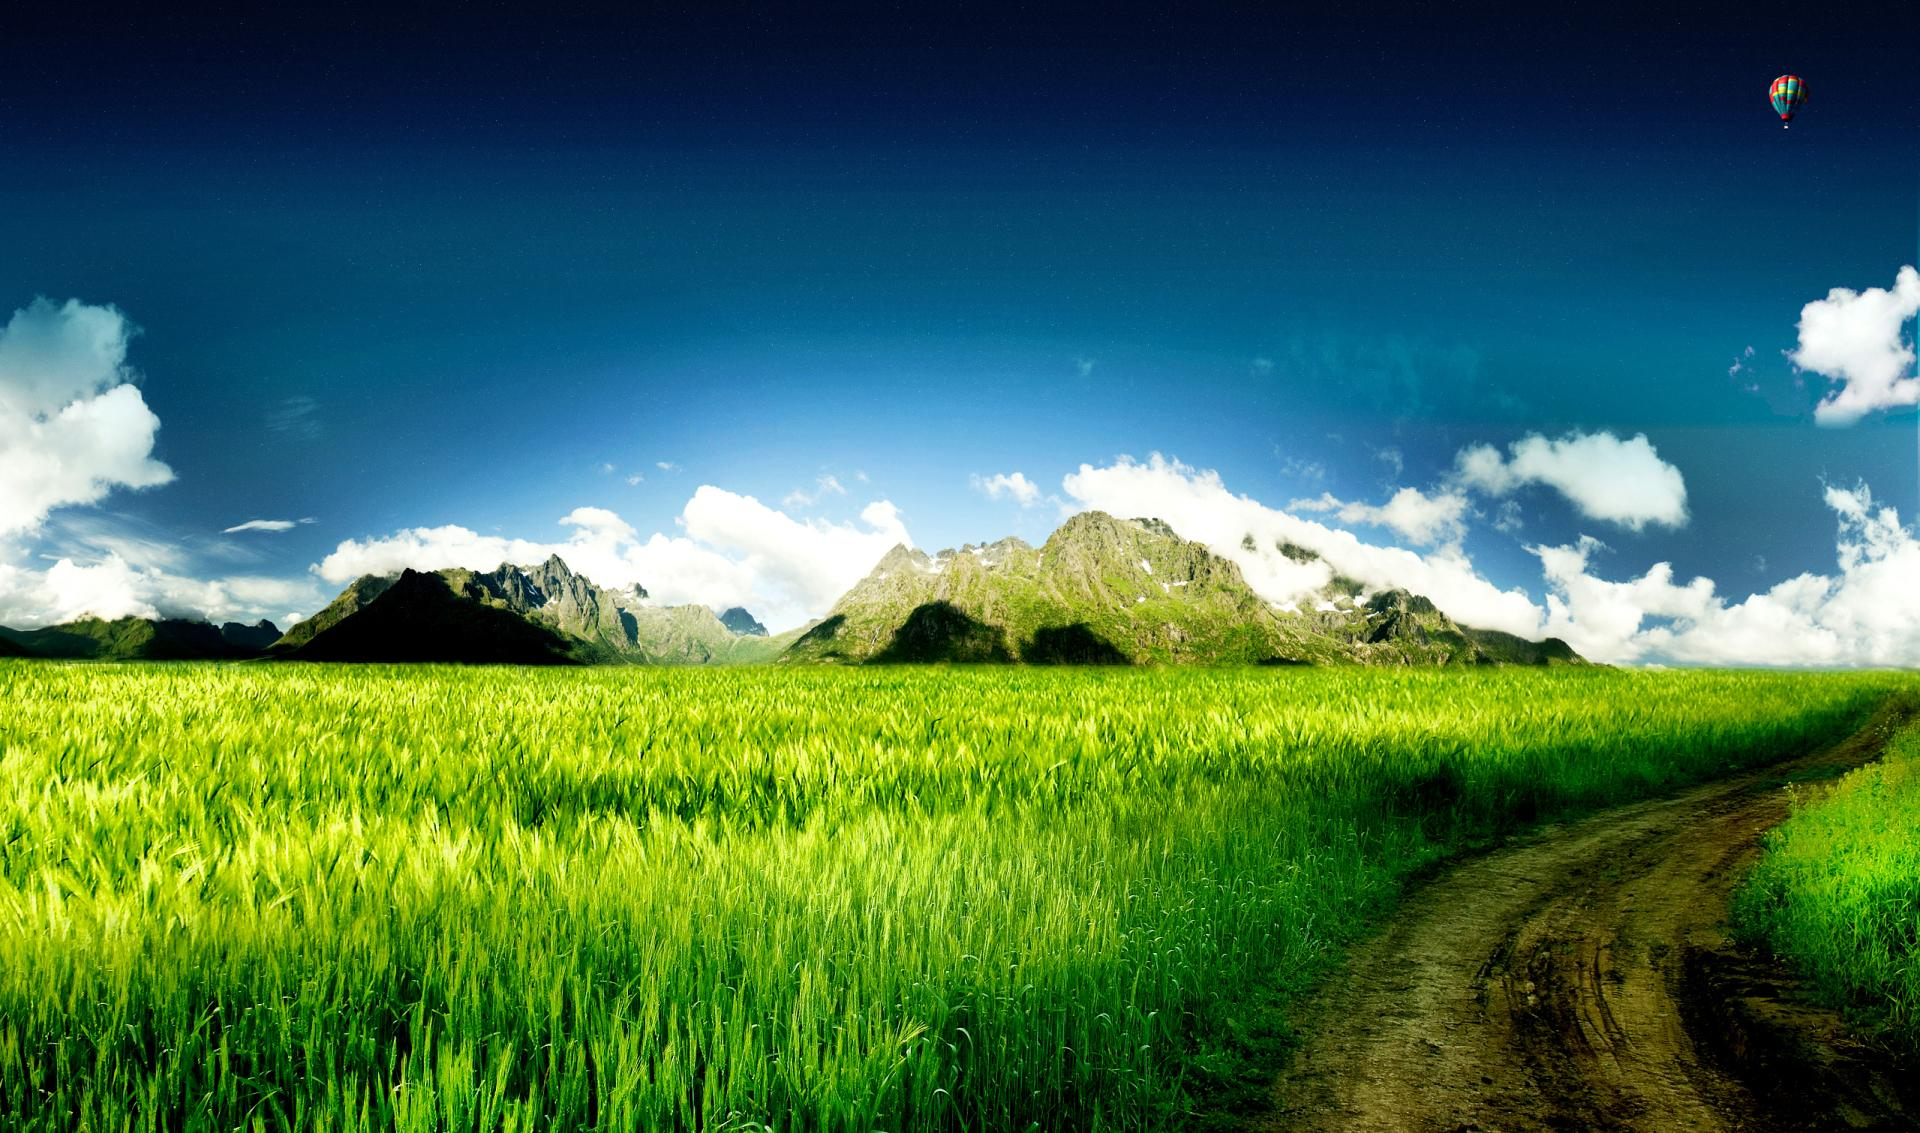 Landscape Artistic wallpapers HD quality